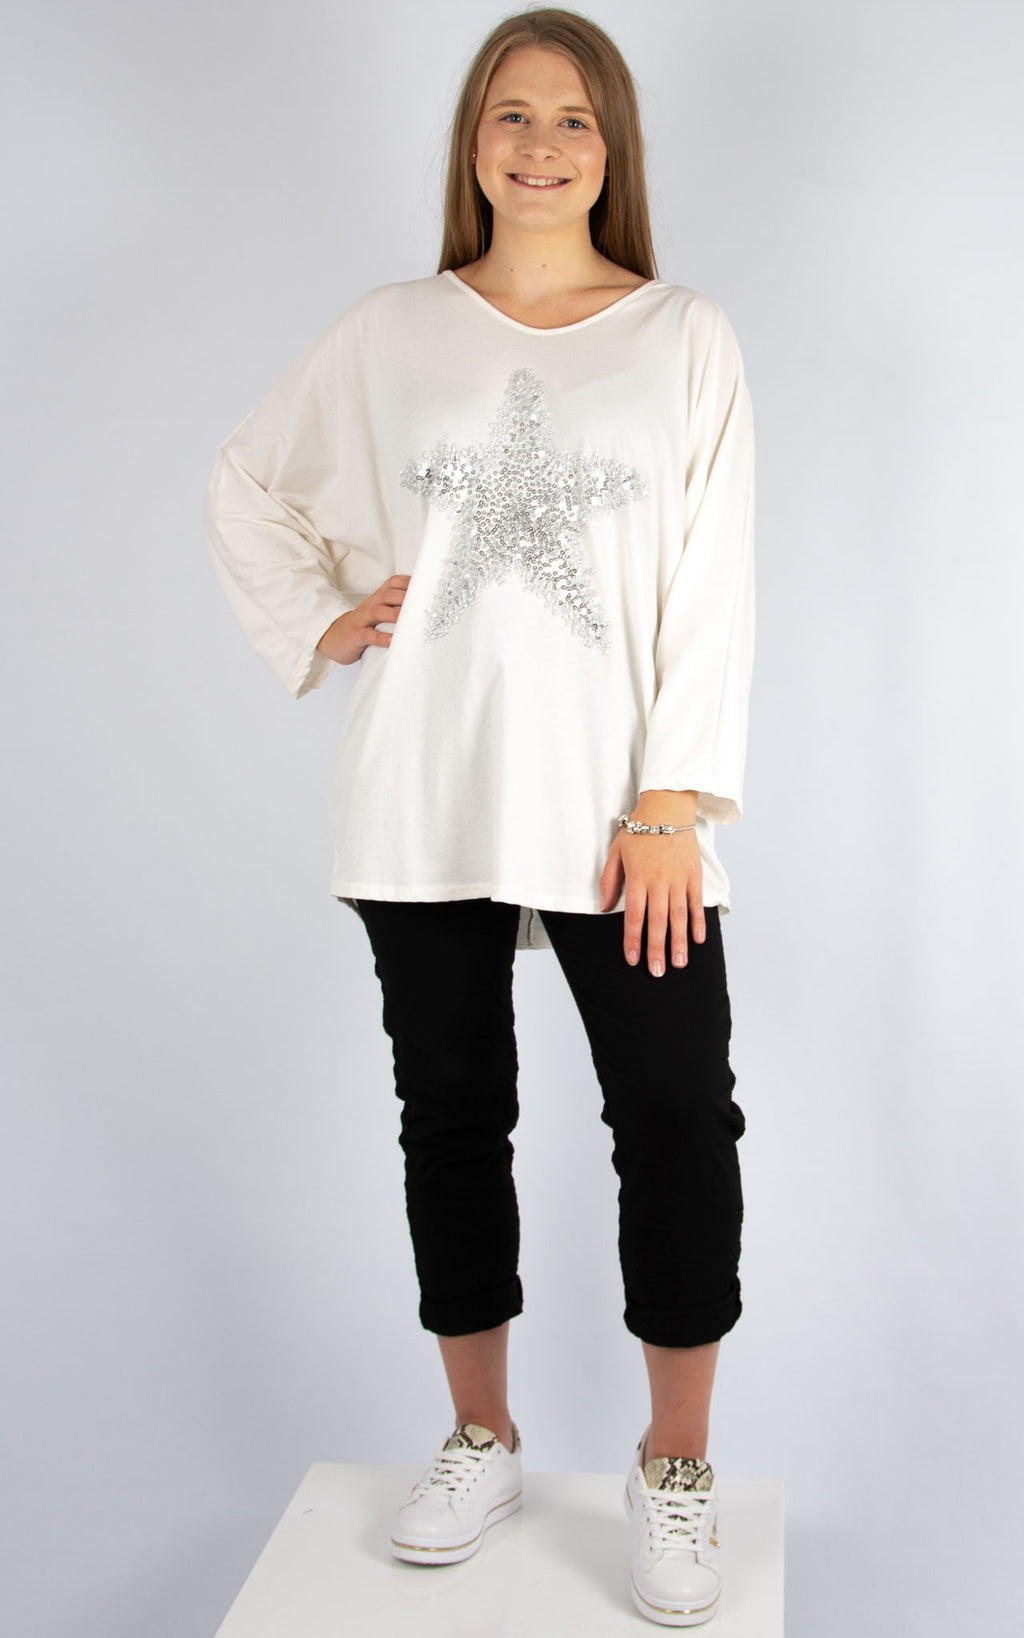 Top: V Neck Sequin Star Top | Cream